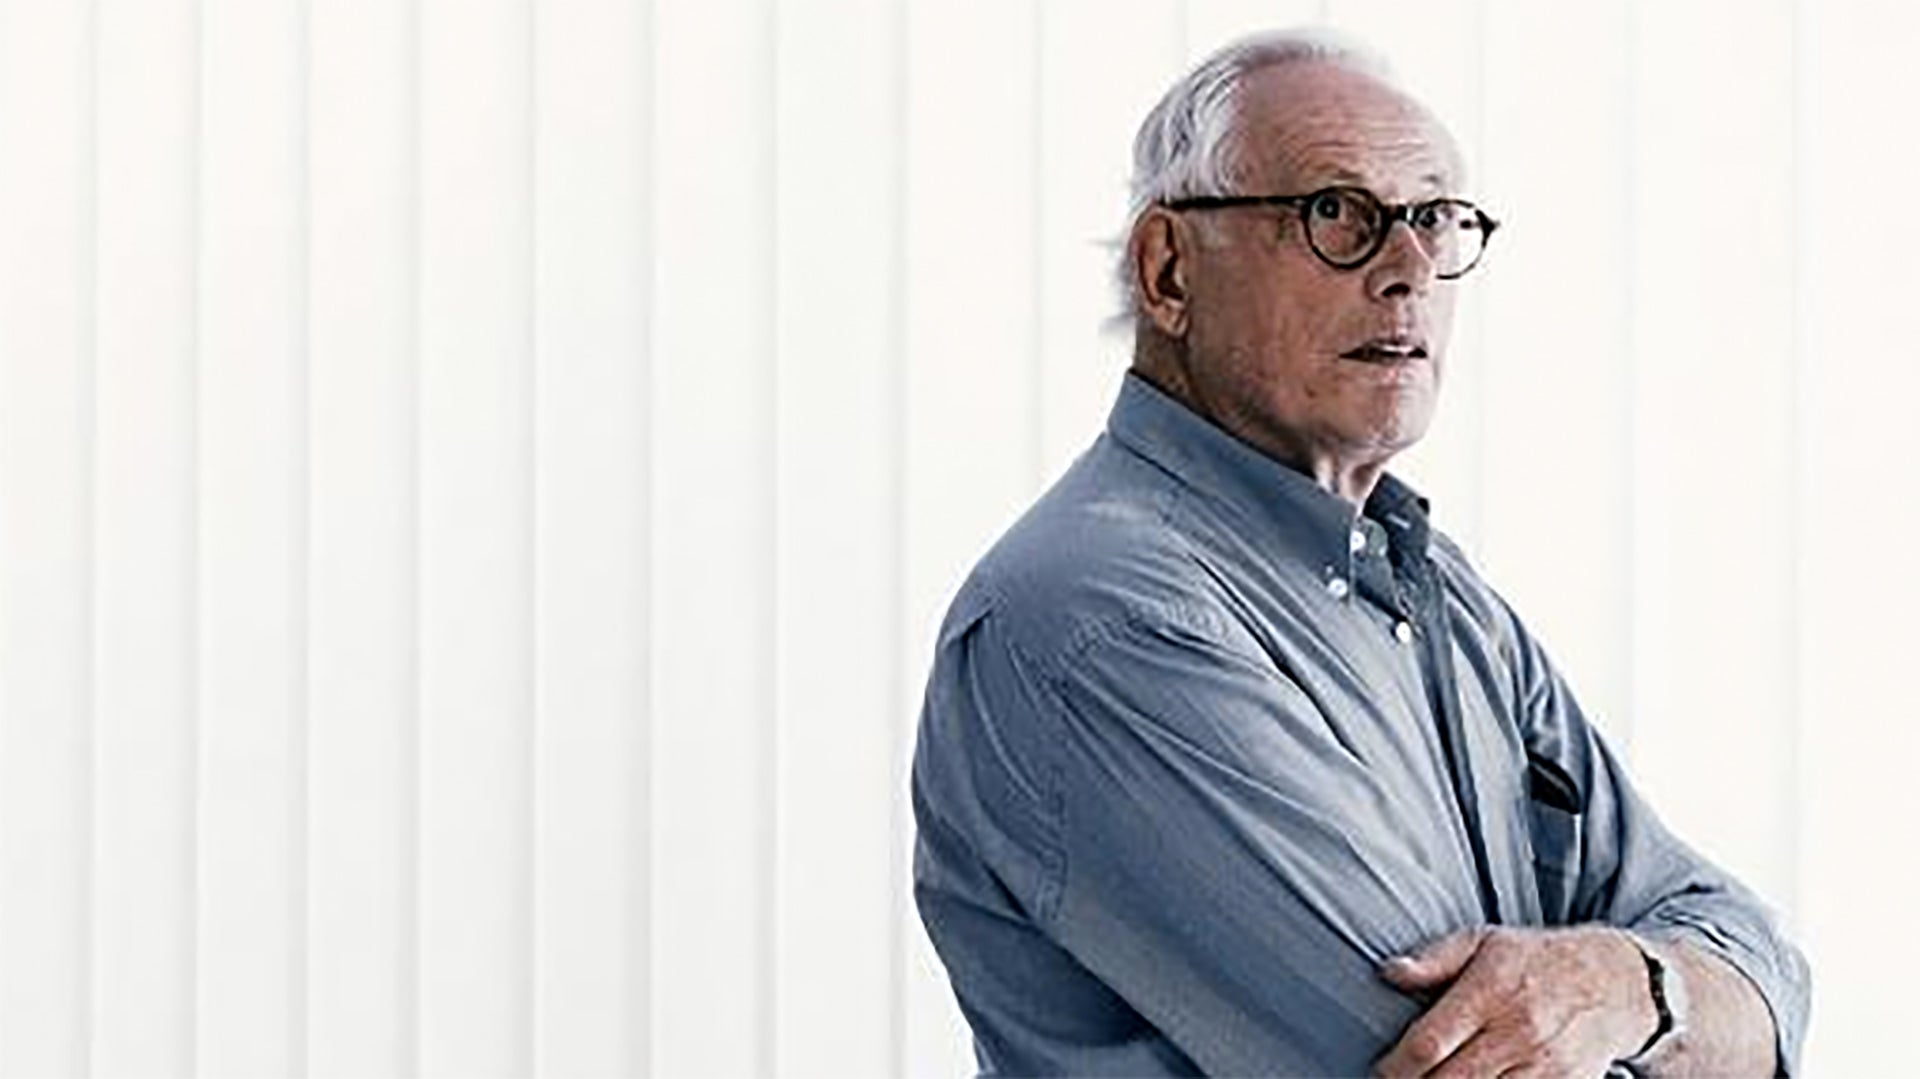 Dieter Rams: An inside look at the man who inspired Apple design | Trusted Reviews